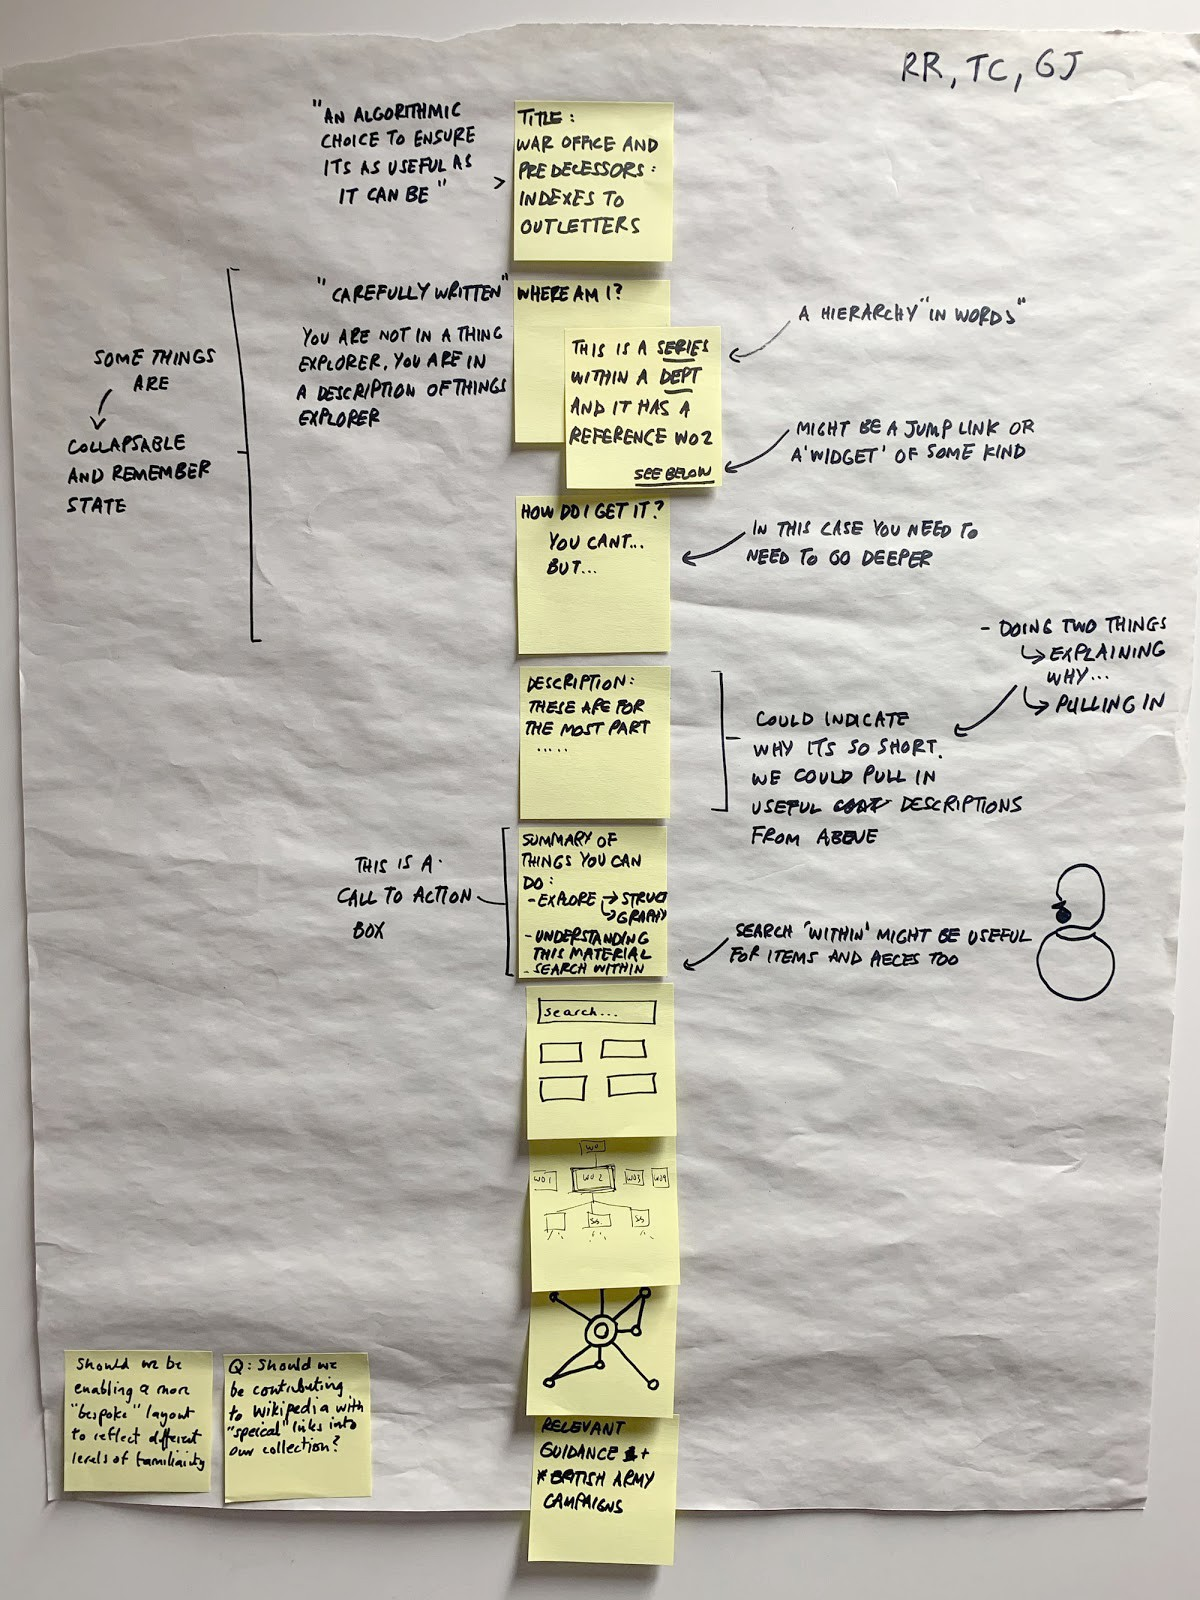 A concept produced during a priority guides workshop